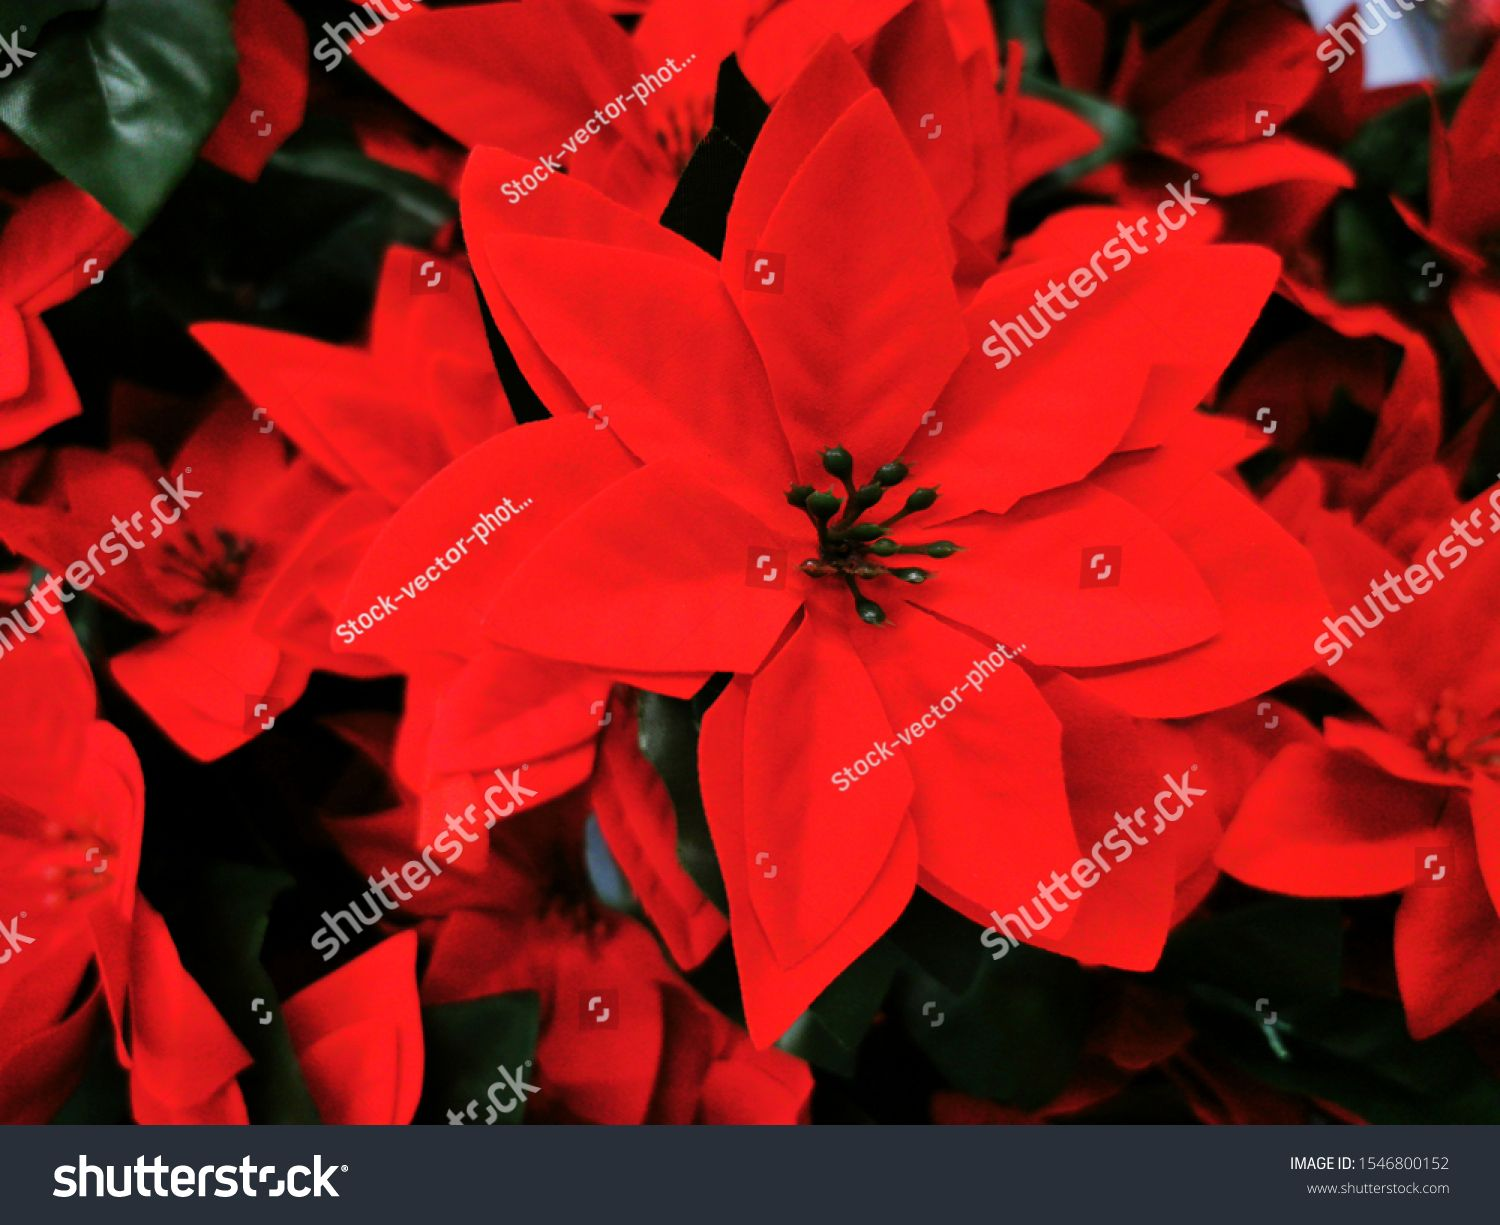 Red Poinsettia Flower Also Known As The Christmas Star Or Bartholomew Star New Year Winter Holiday Xmas Co Poinsettia Flower Christmas Star Christmas Photos